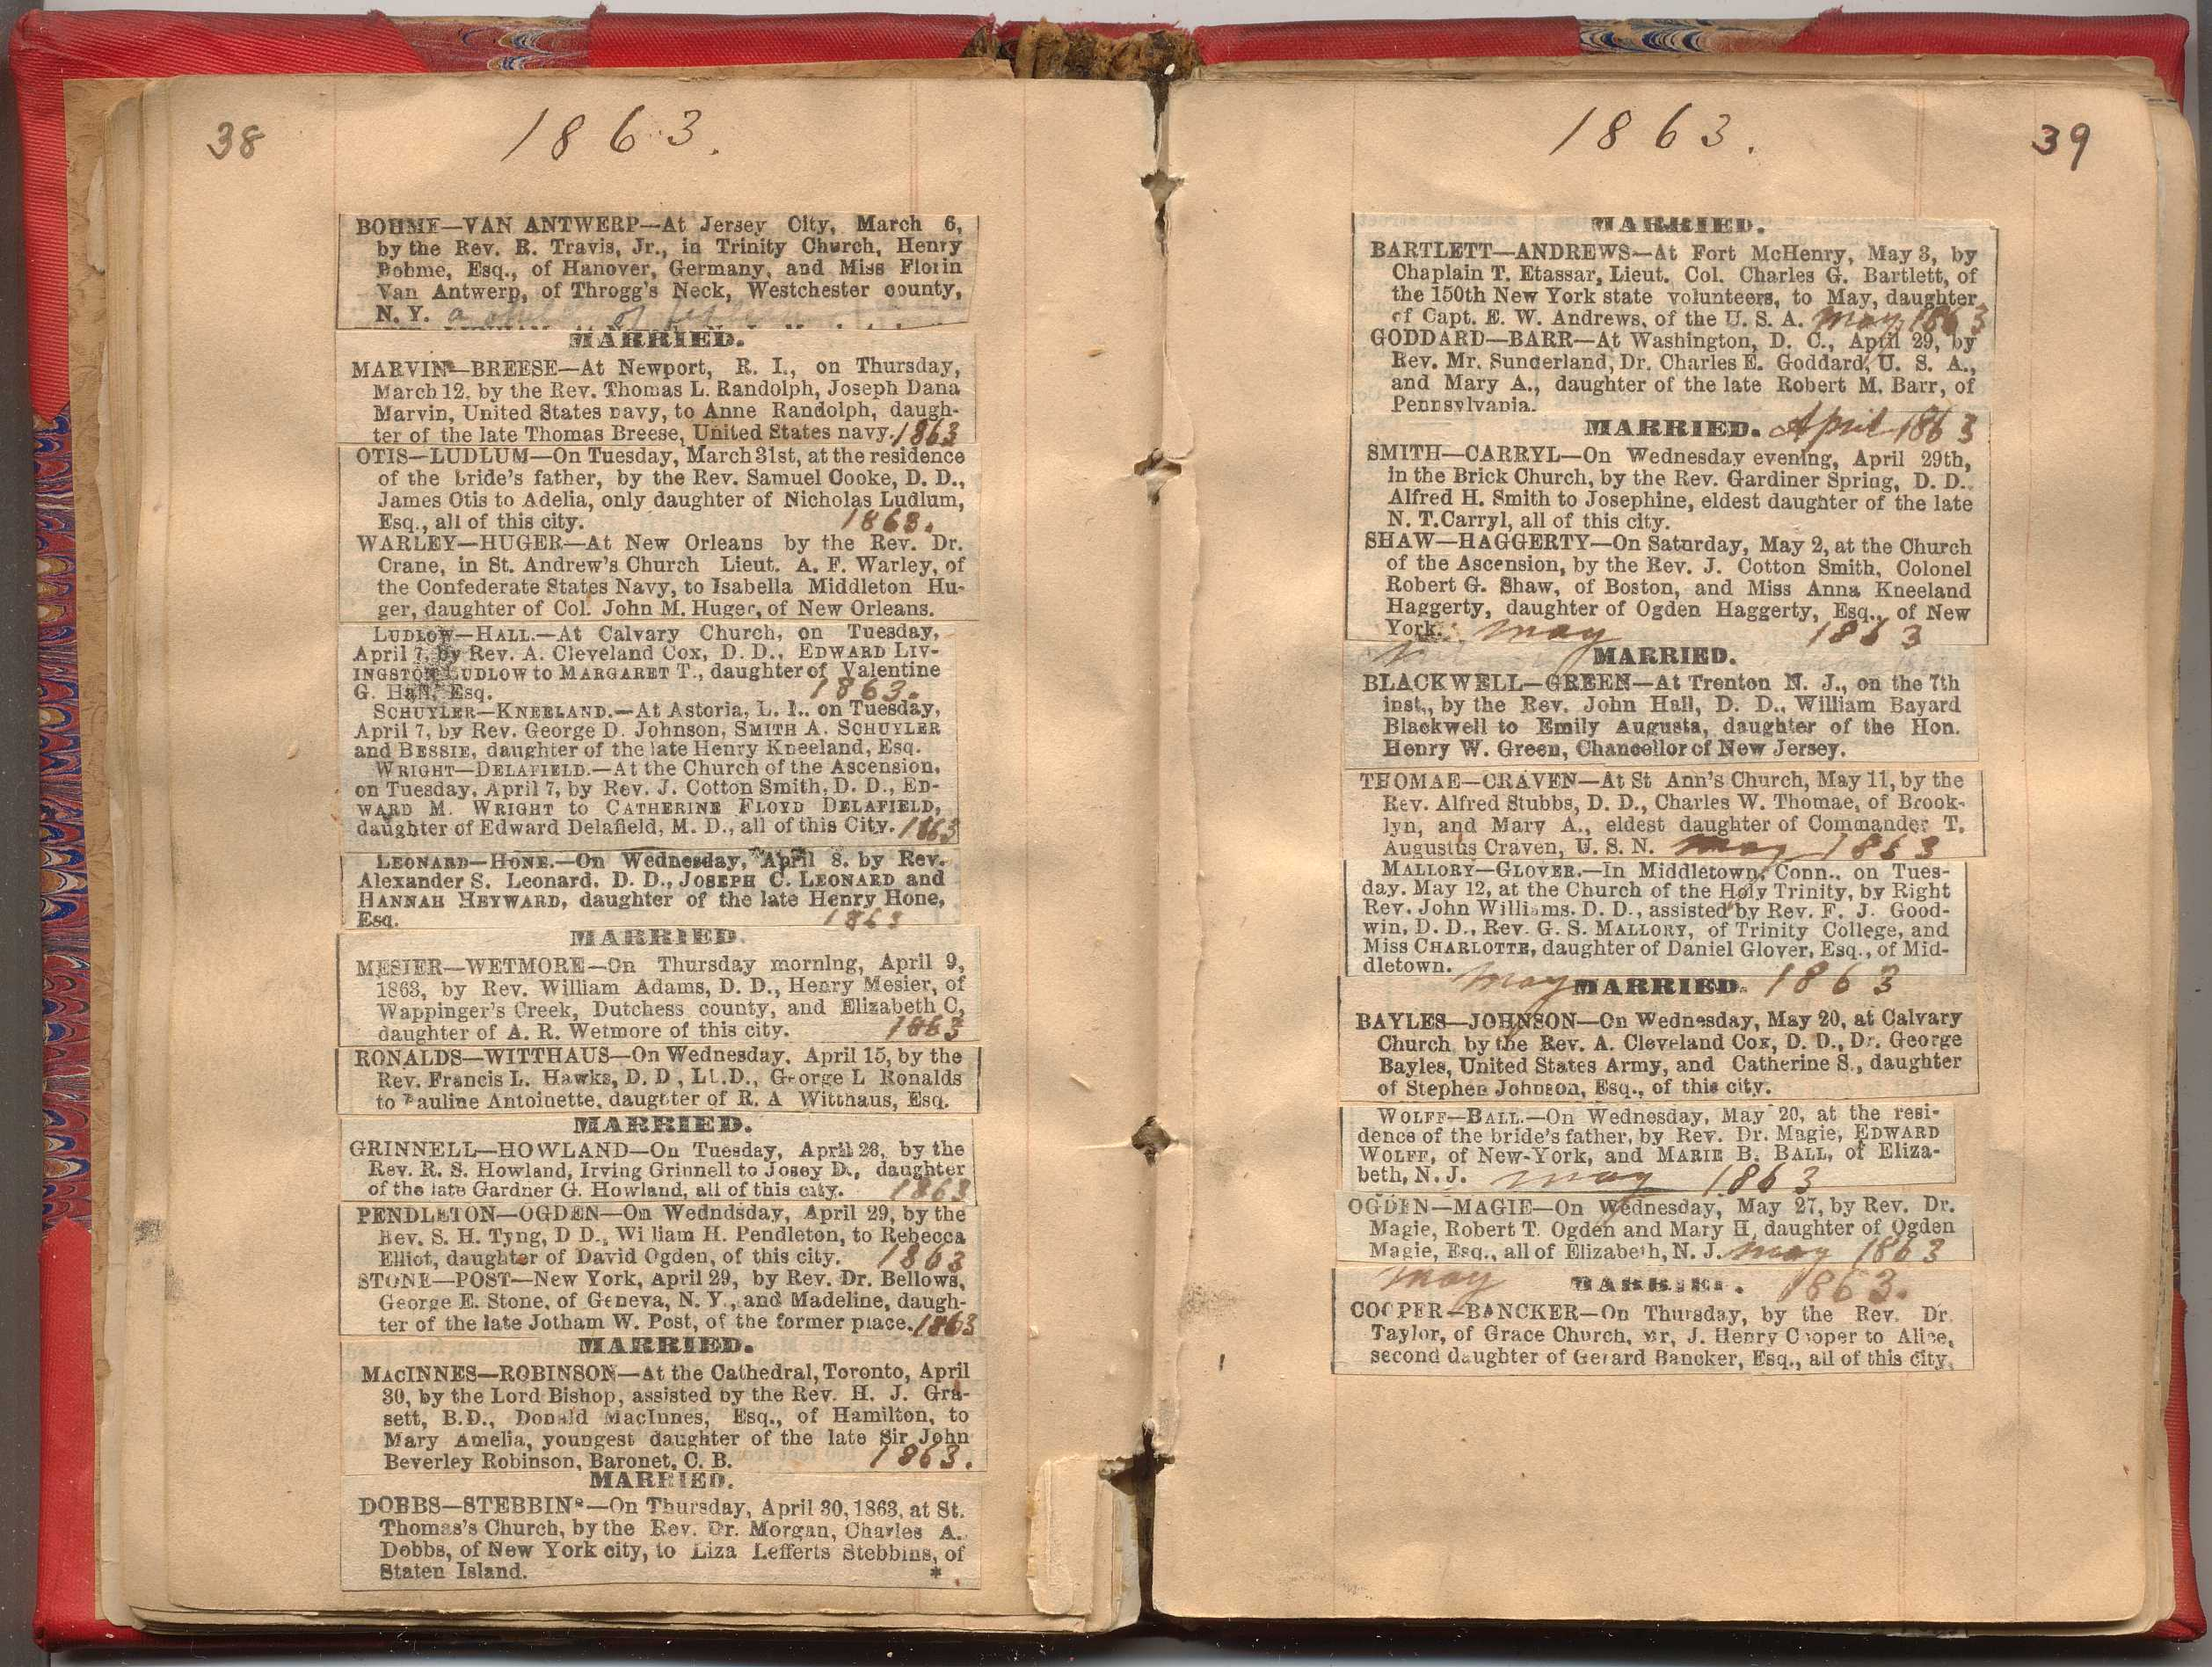 NYC Marriage & Death Notices 1857-1868 | New York Society ...